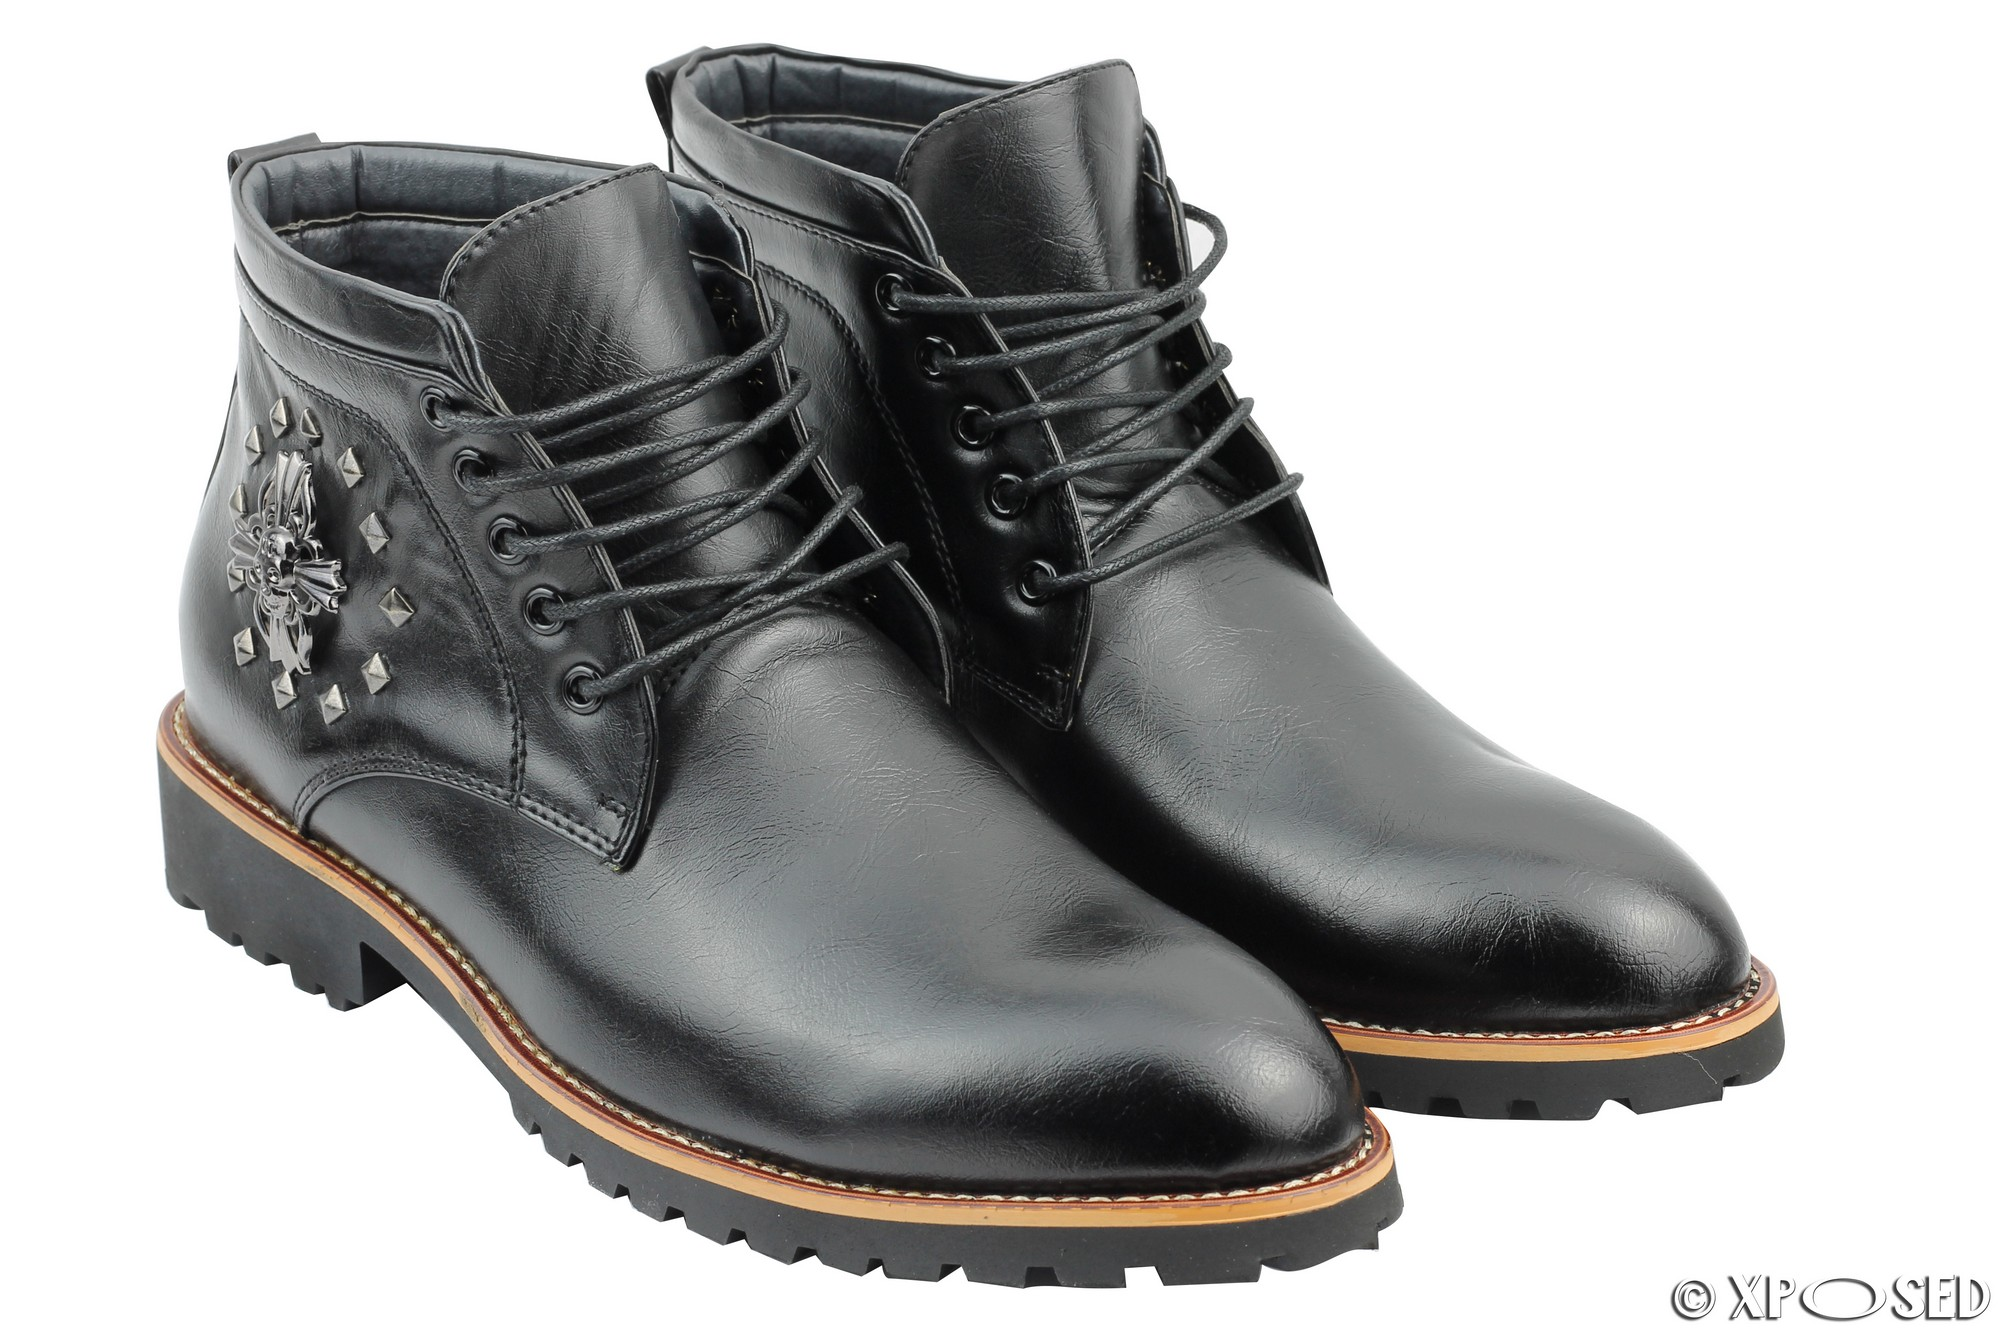 New Mens Faux Leather BootsSmart Casual Lace up Ankle ...